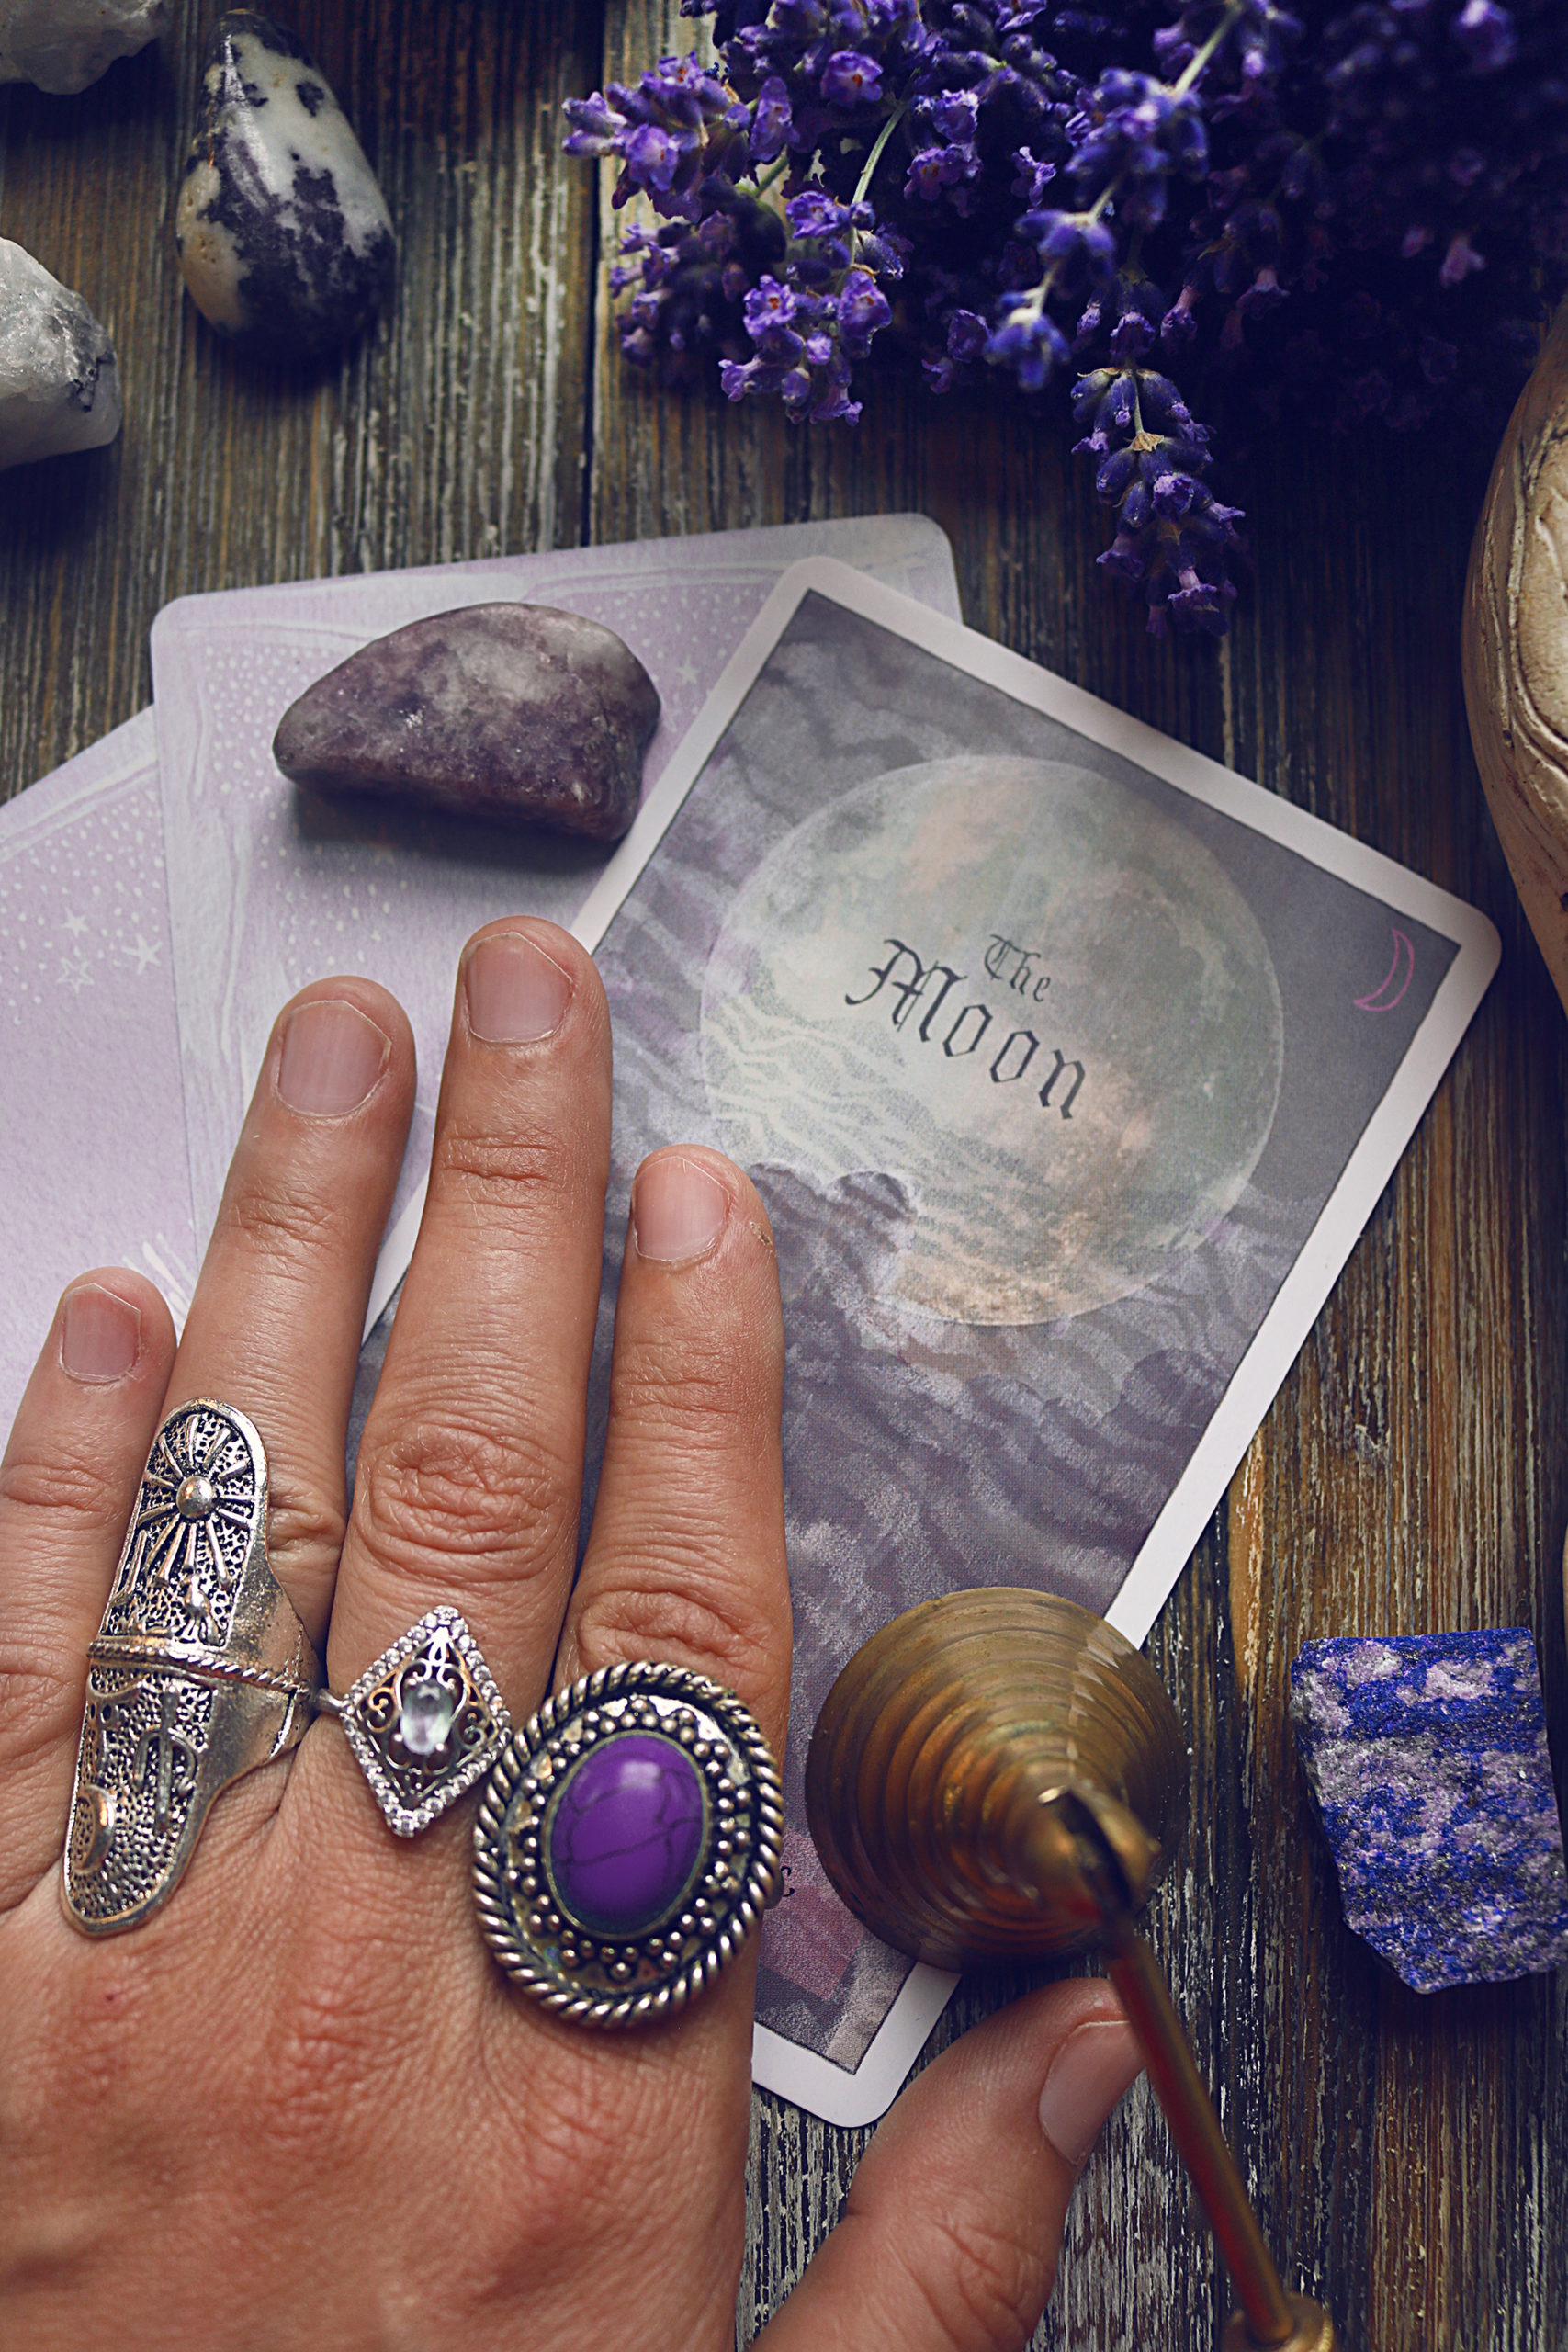 Why I use oracle cards instead of tarot cards when reading for myself.